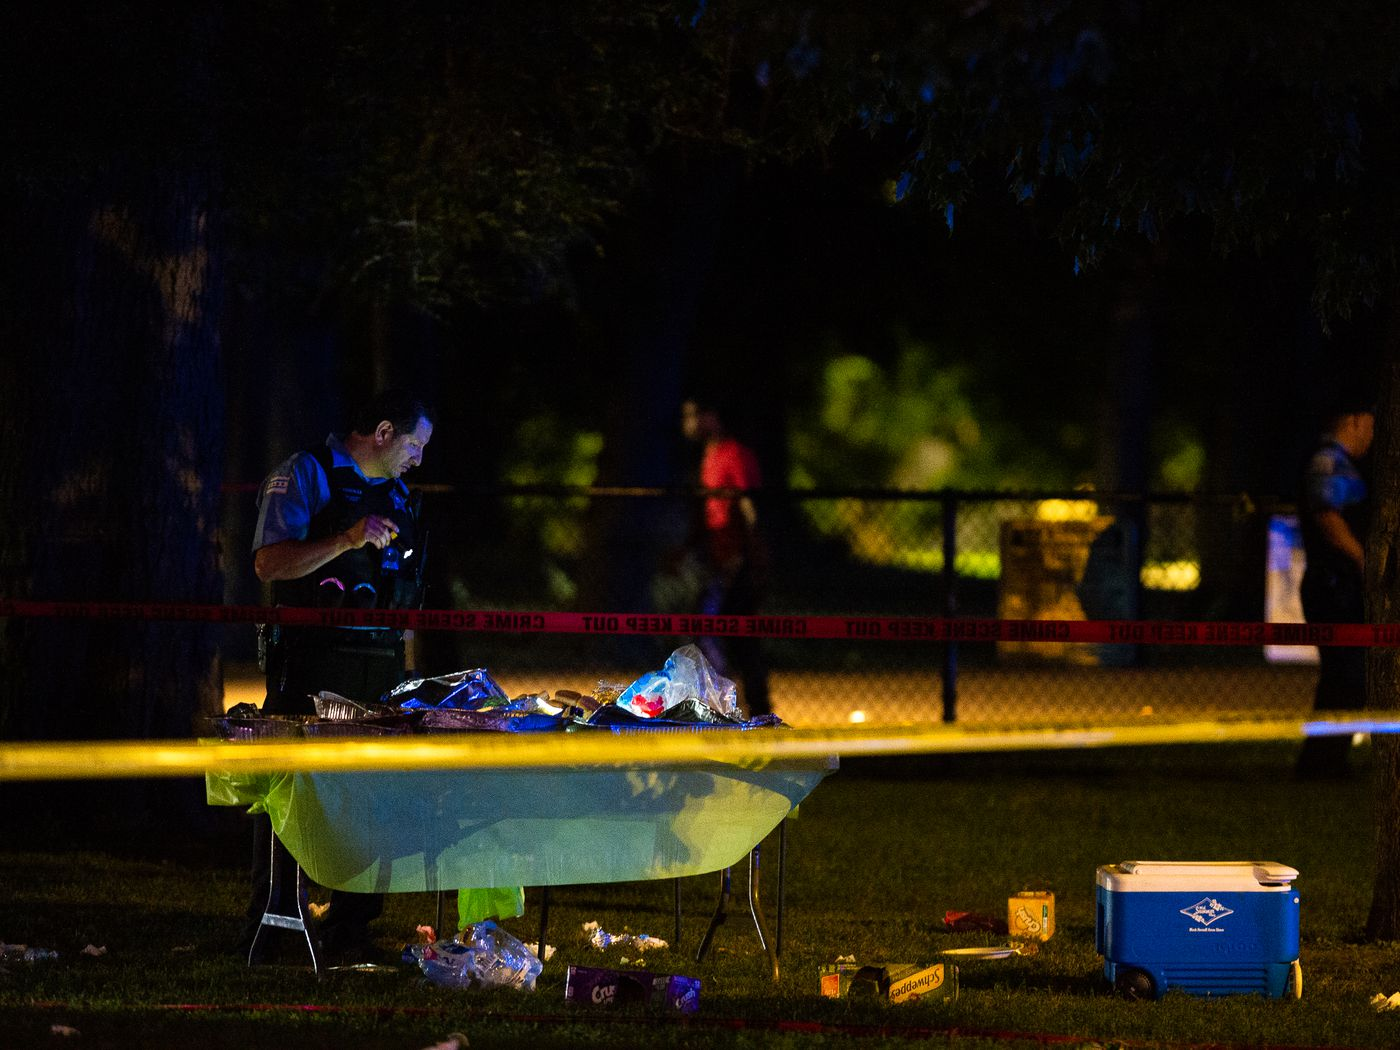 7 killed, 46 wounded in Chicago weekend shootings